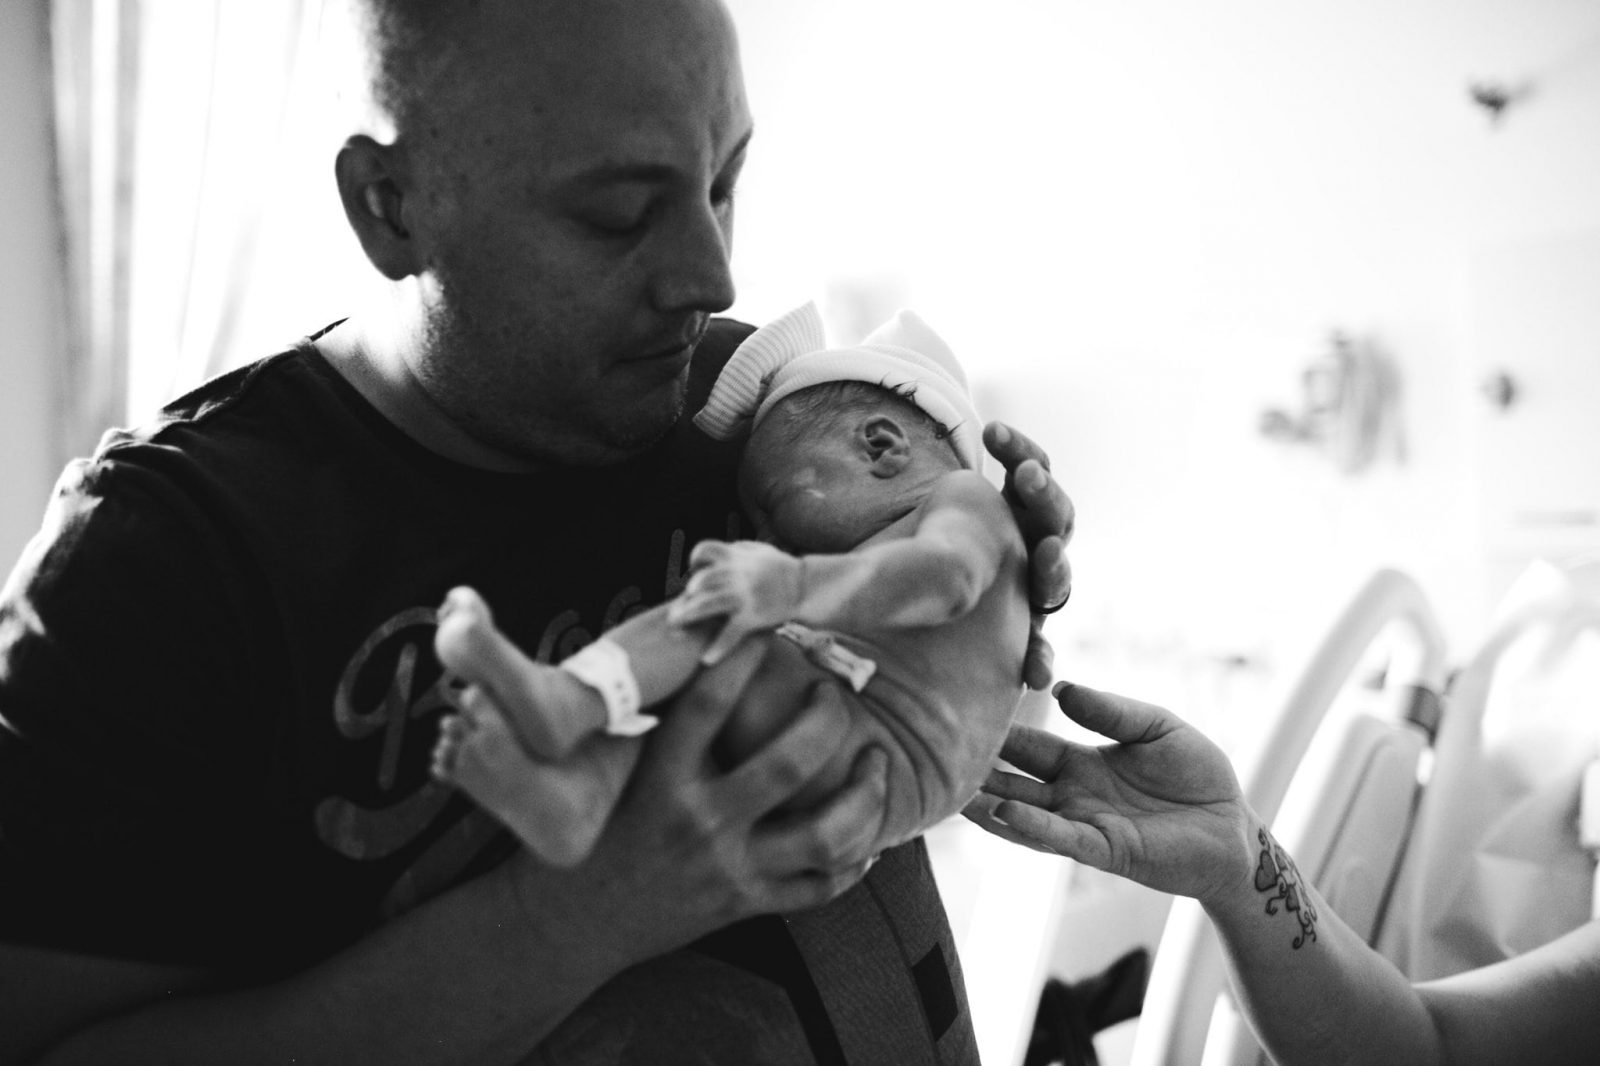 photograph of father holding newborn baby girl for the first time at wollongong hospital maternity ward